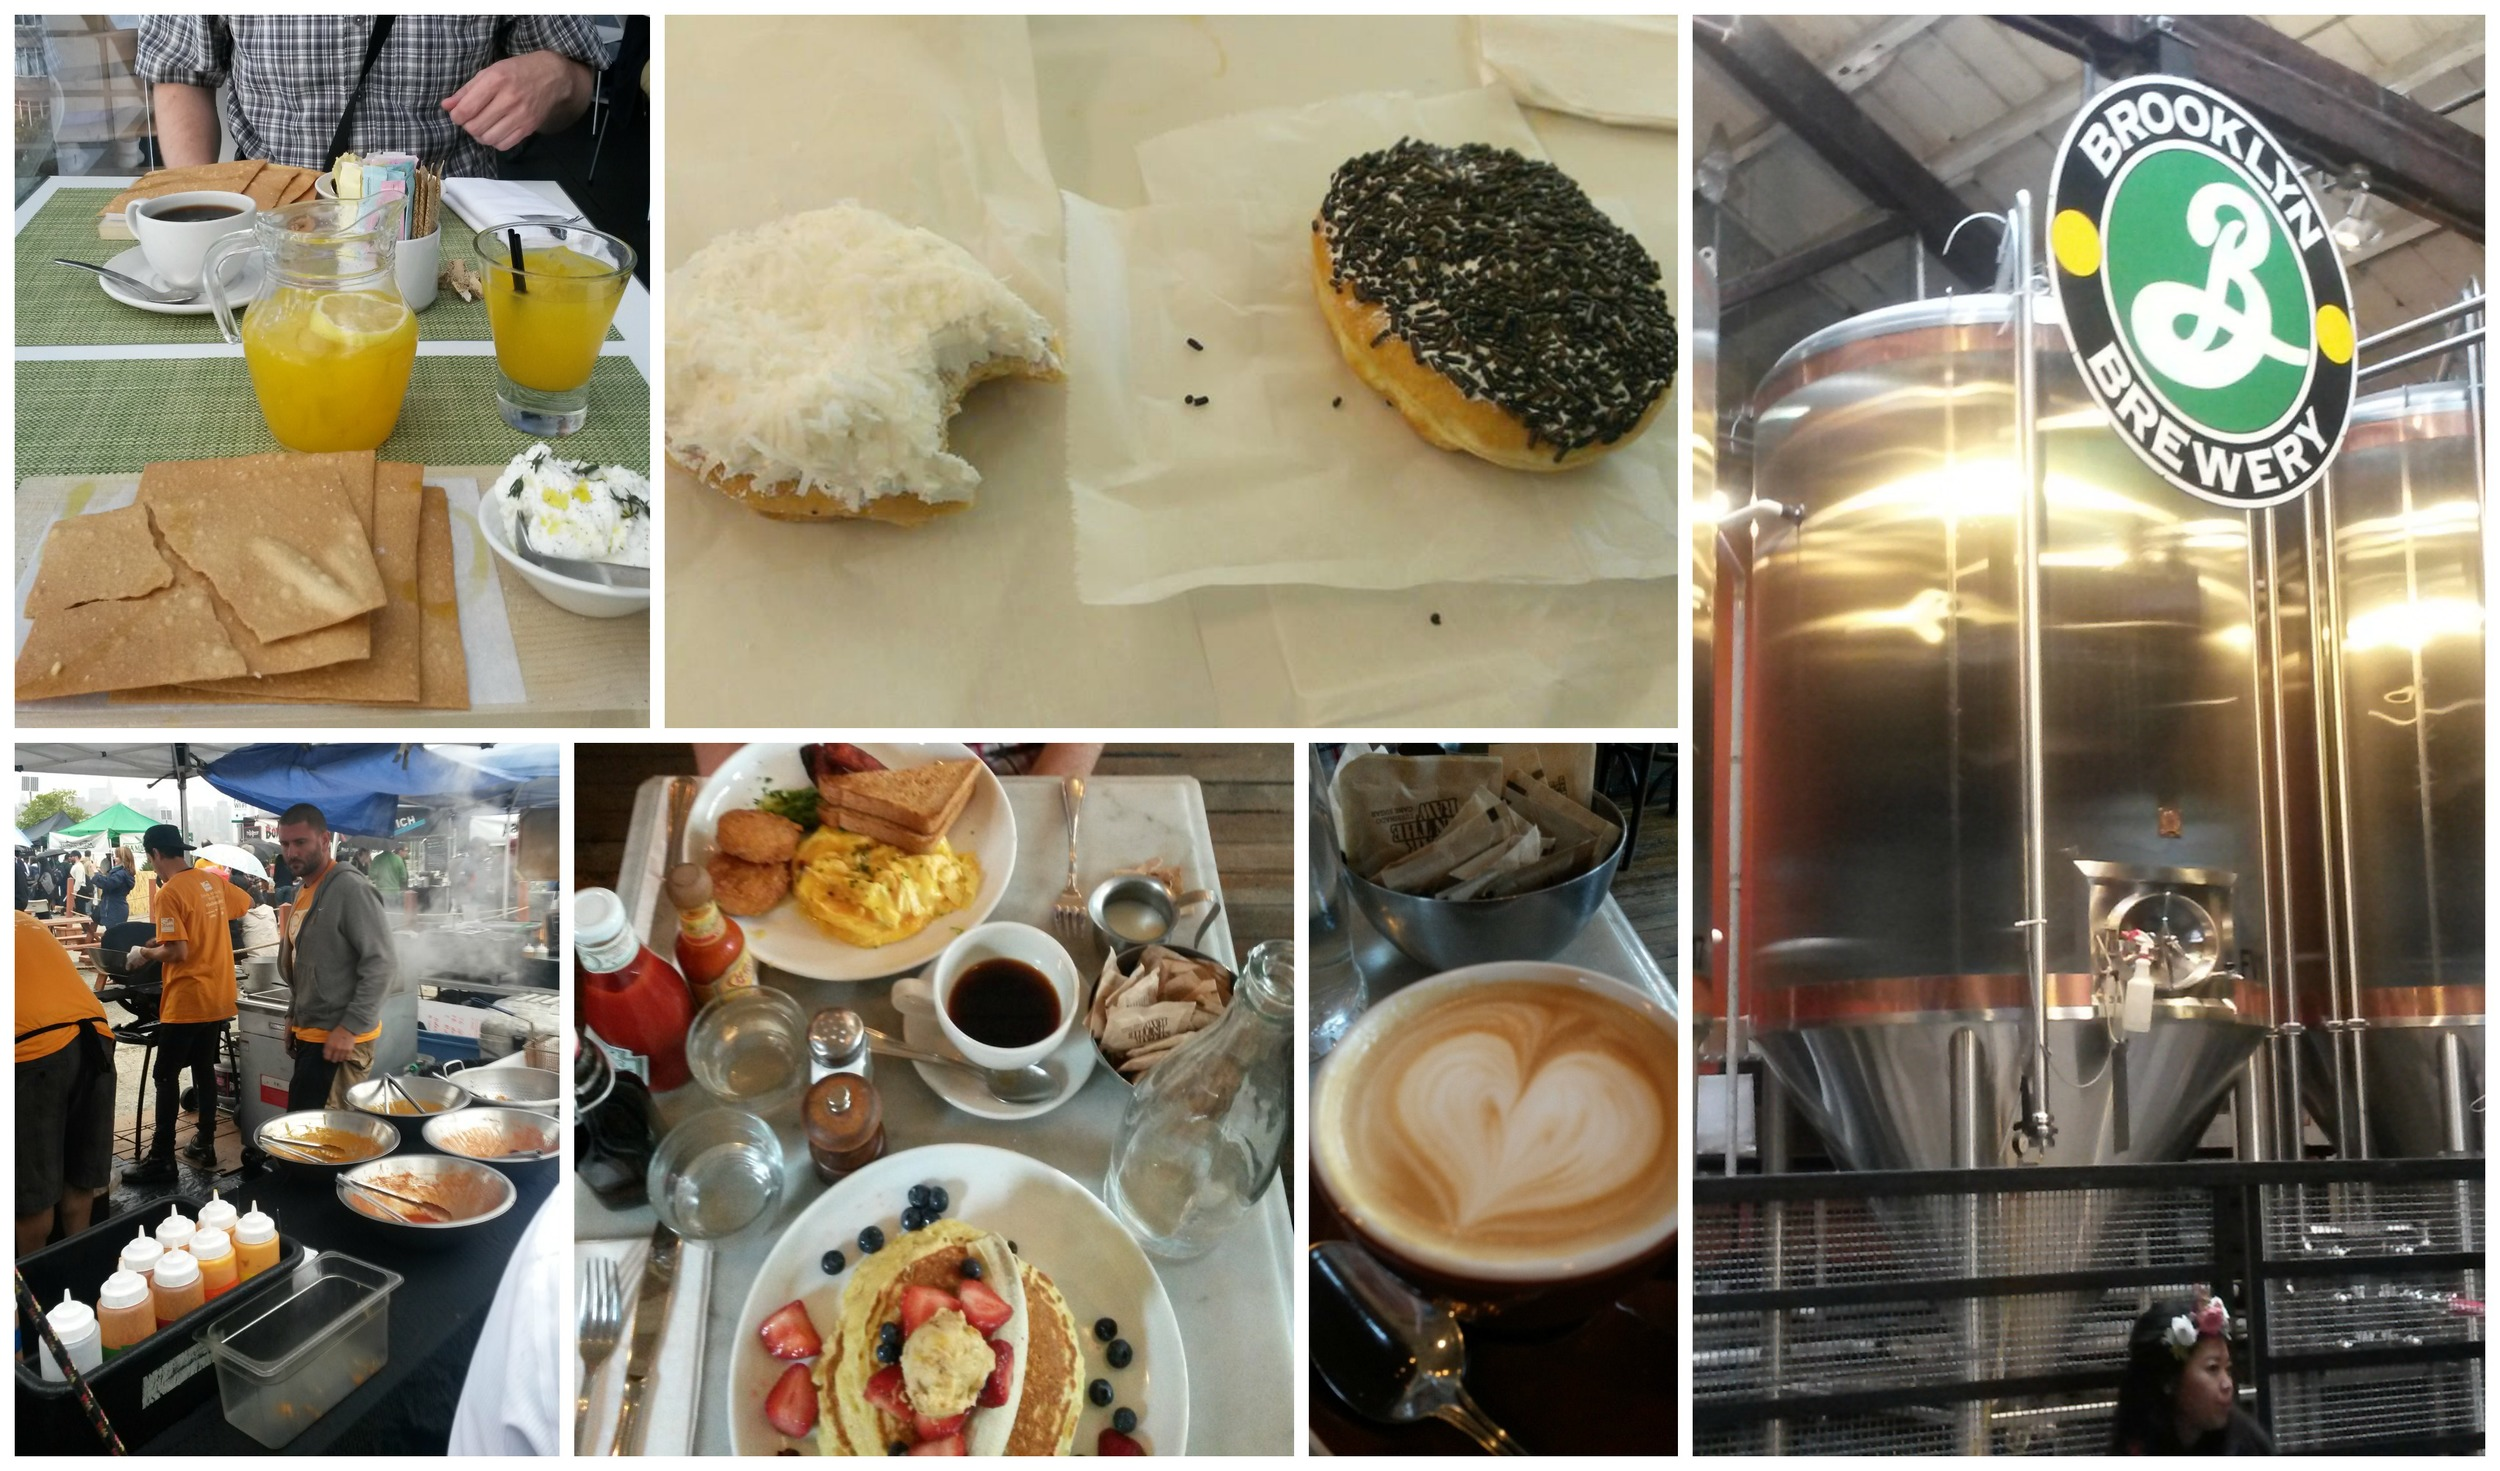 MoMa, Peter Pan Bakery, Brooklyn Brewery, Five Leaves and Smorgasburg.